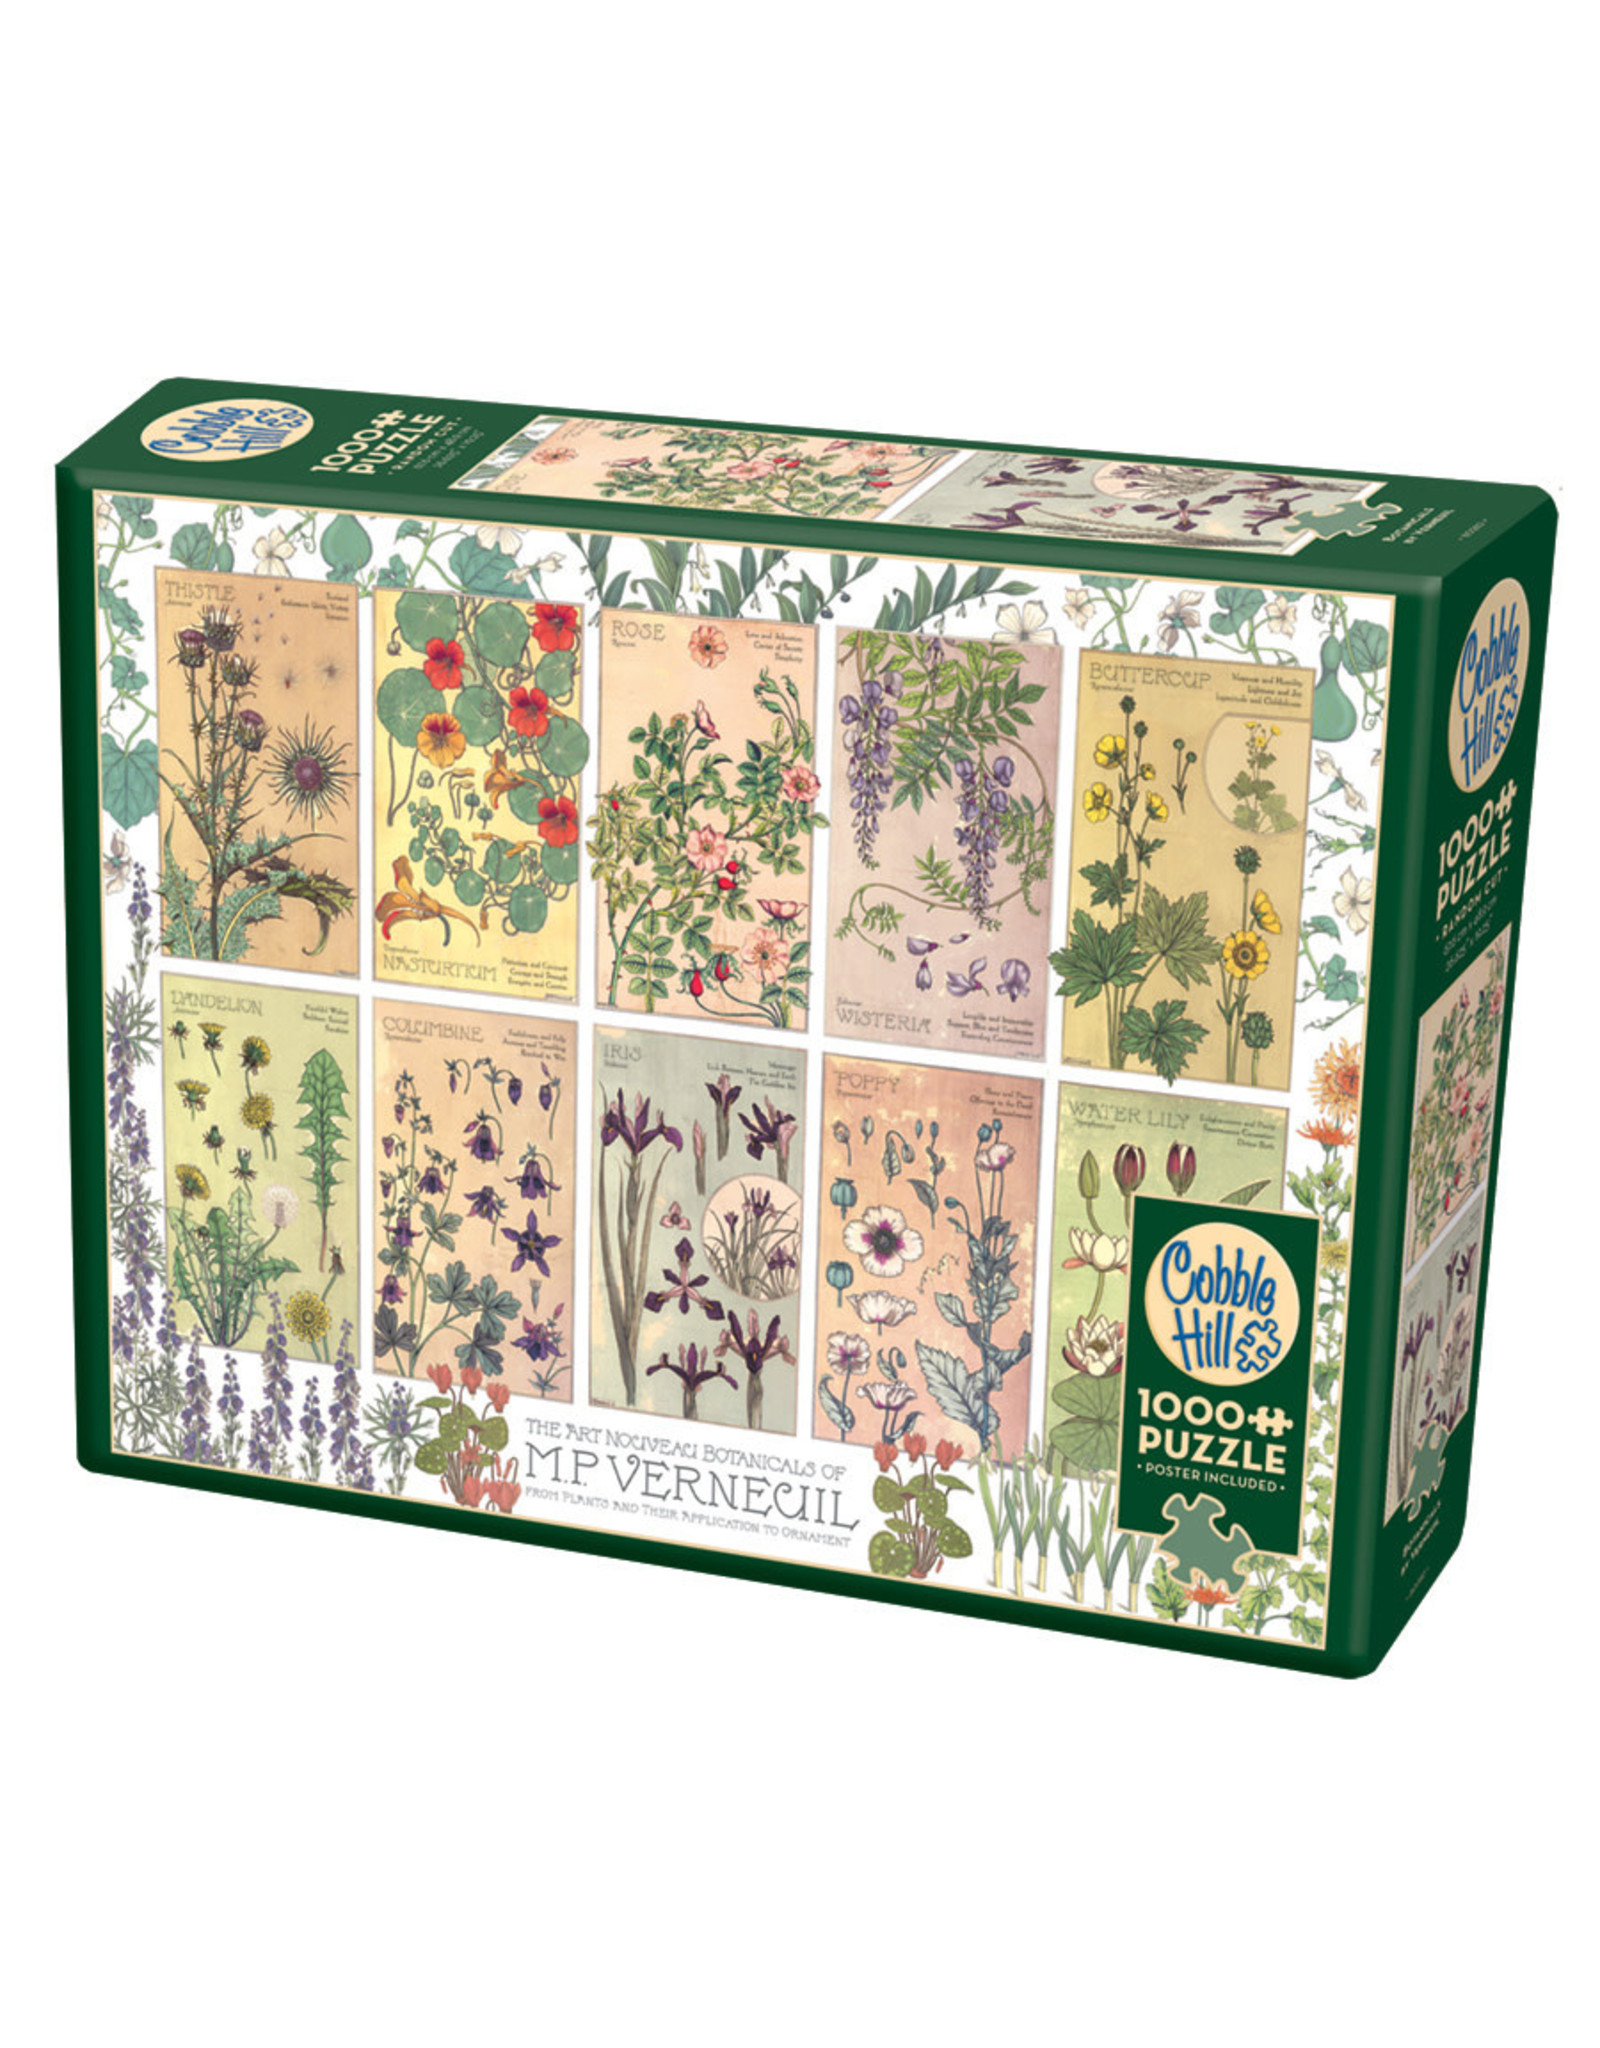 Cobble Hill Botanicals by Verneuil 1000 pc